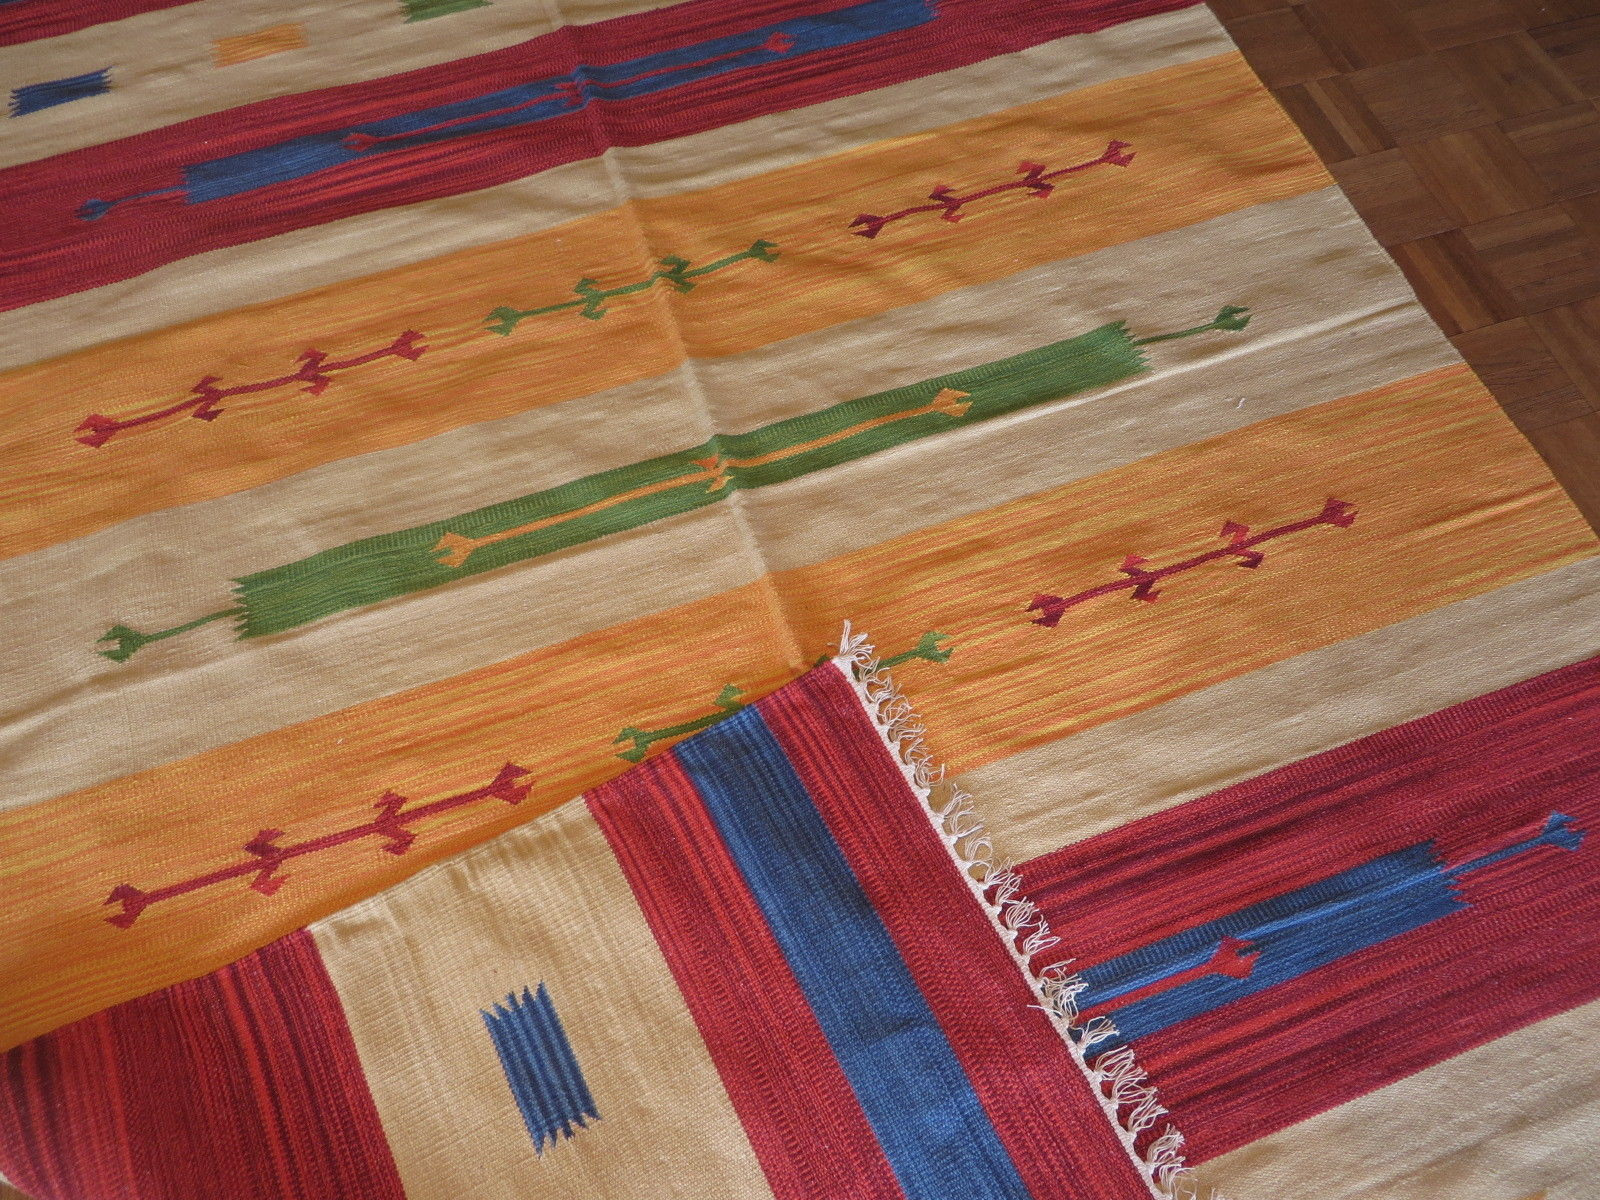 6 X 9 Dhurry Kilim Flat Weave Hand Woven Reversible Rug G3481